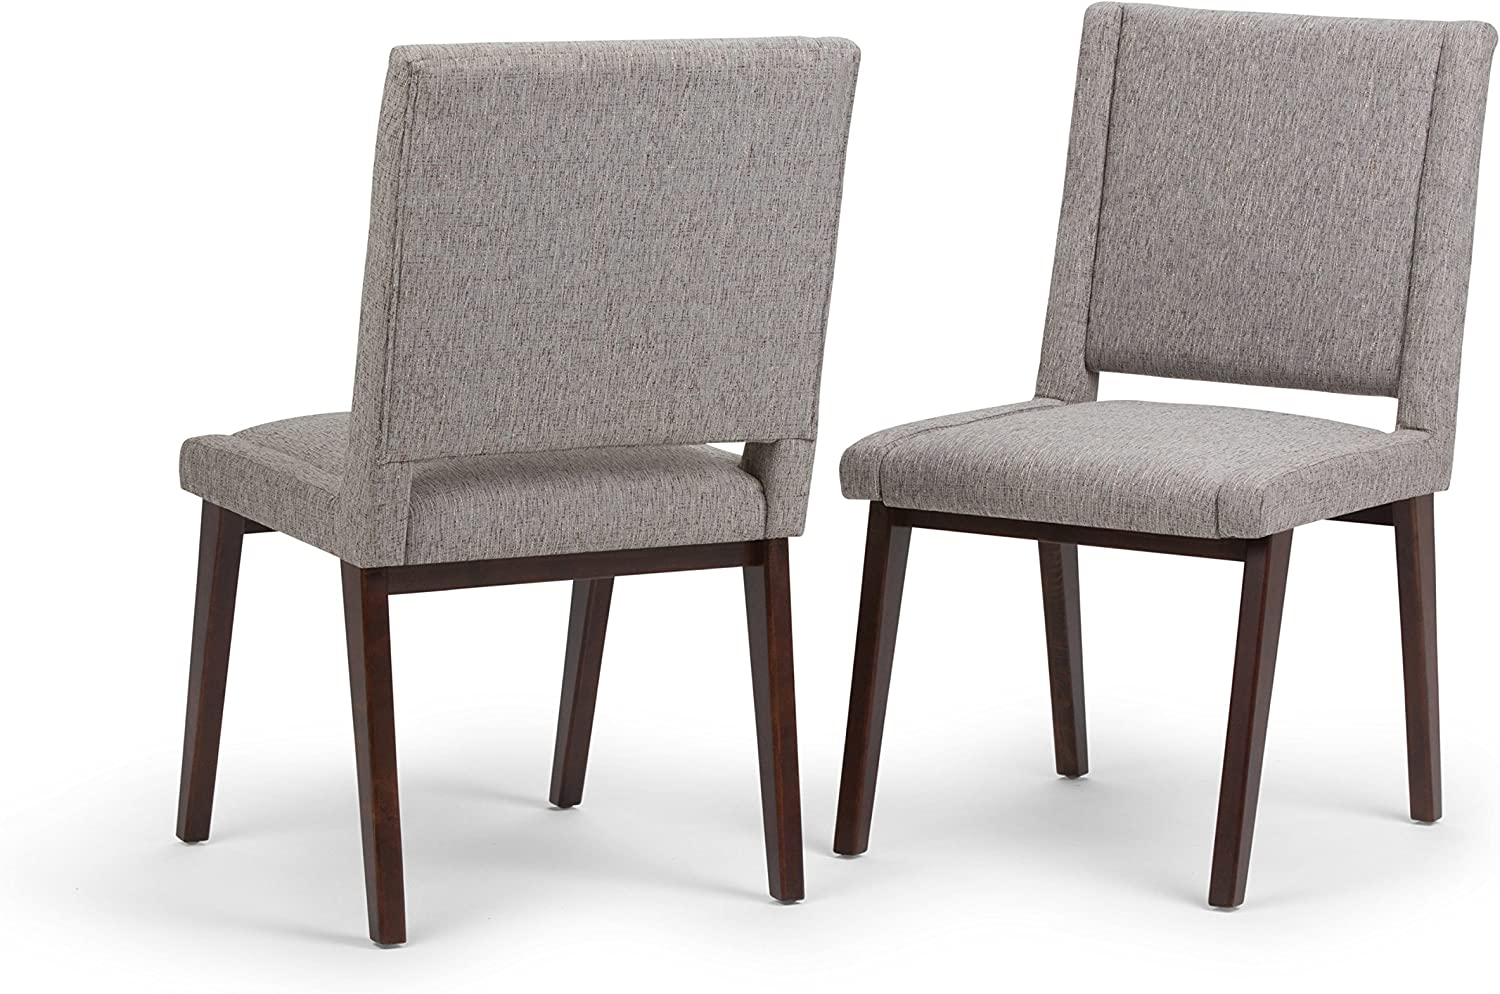 Simpli Home Draper Mid Century Modern Deluxe Dining Chair (Set of 2) in Grey Linen Look Fabric, Fully Assembled